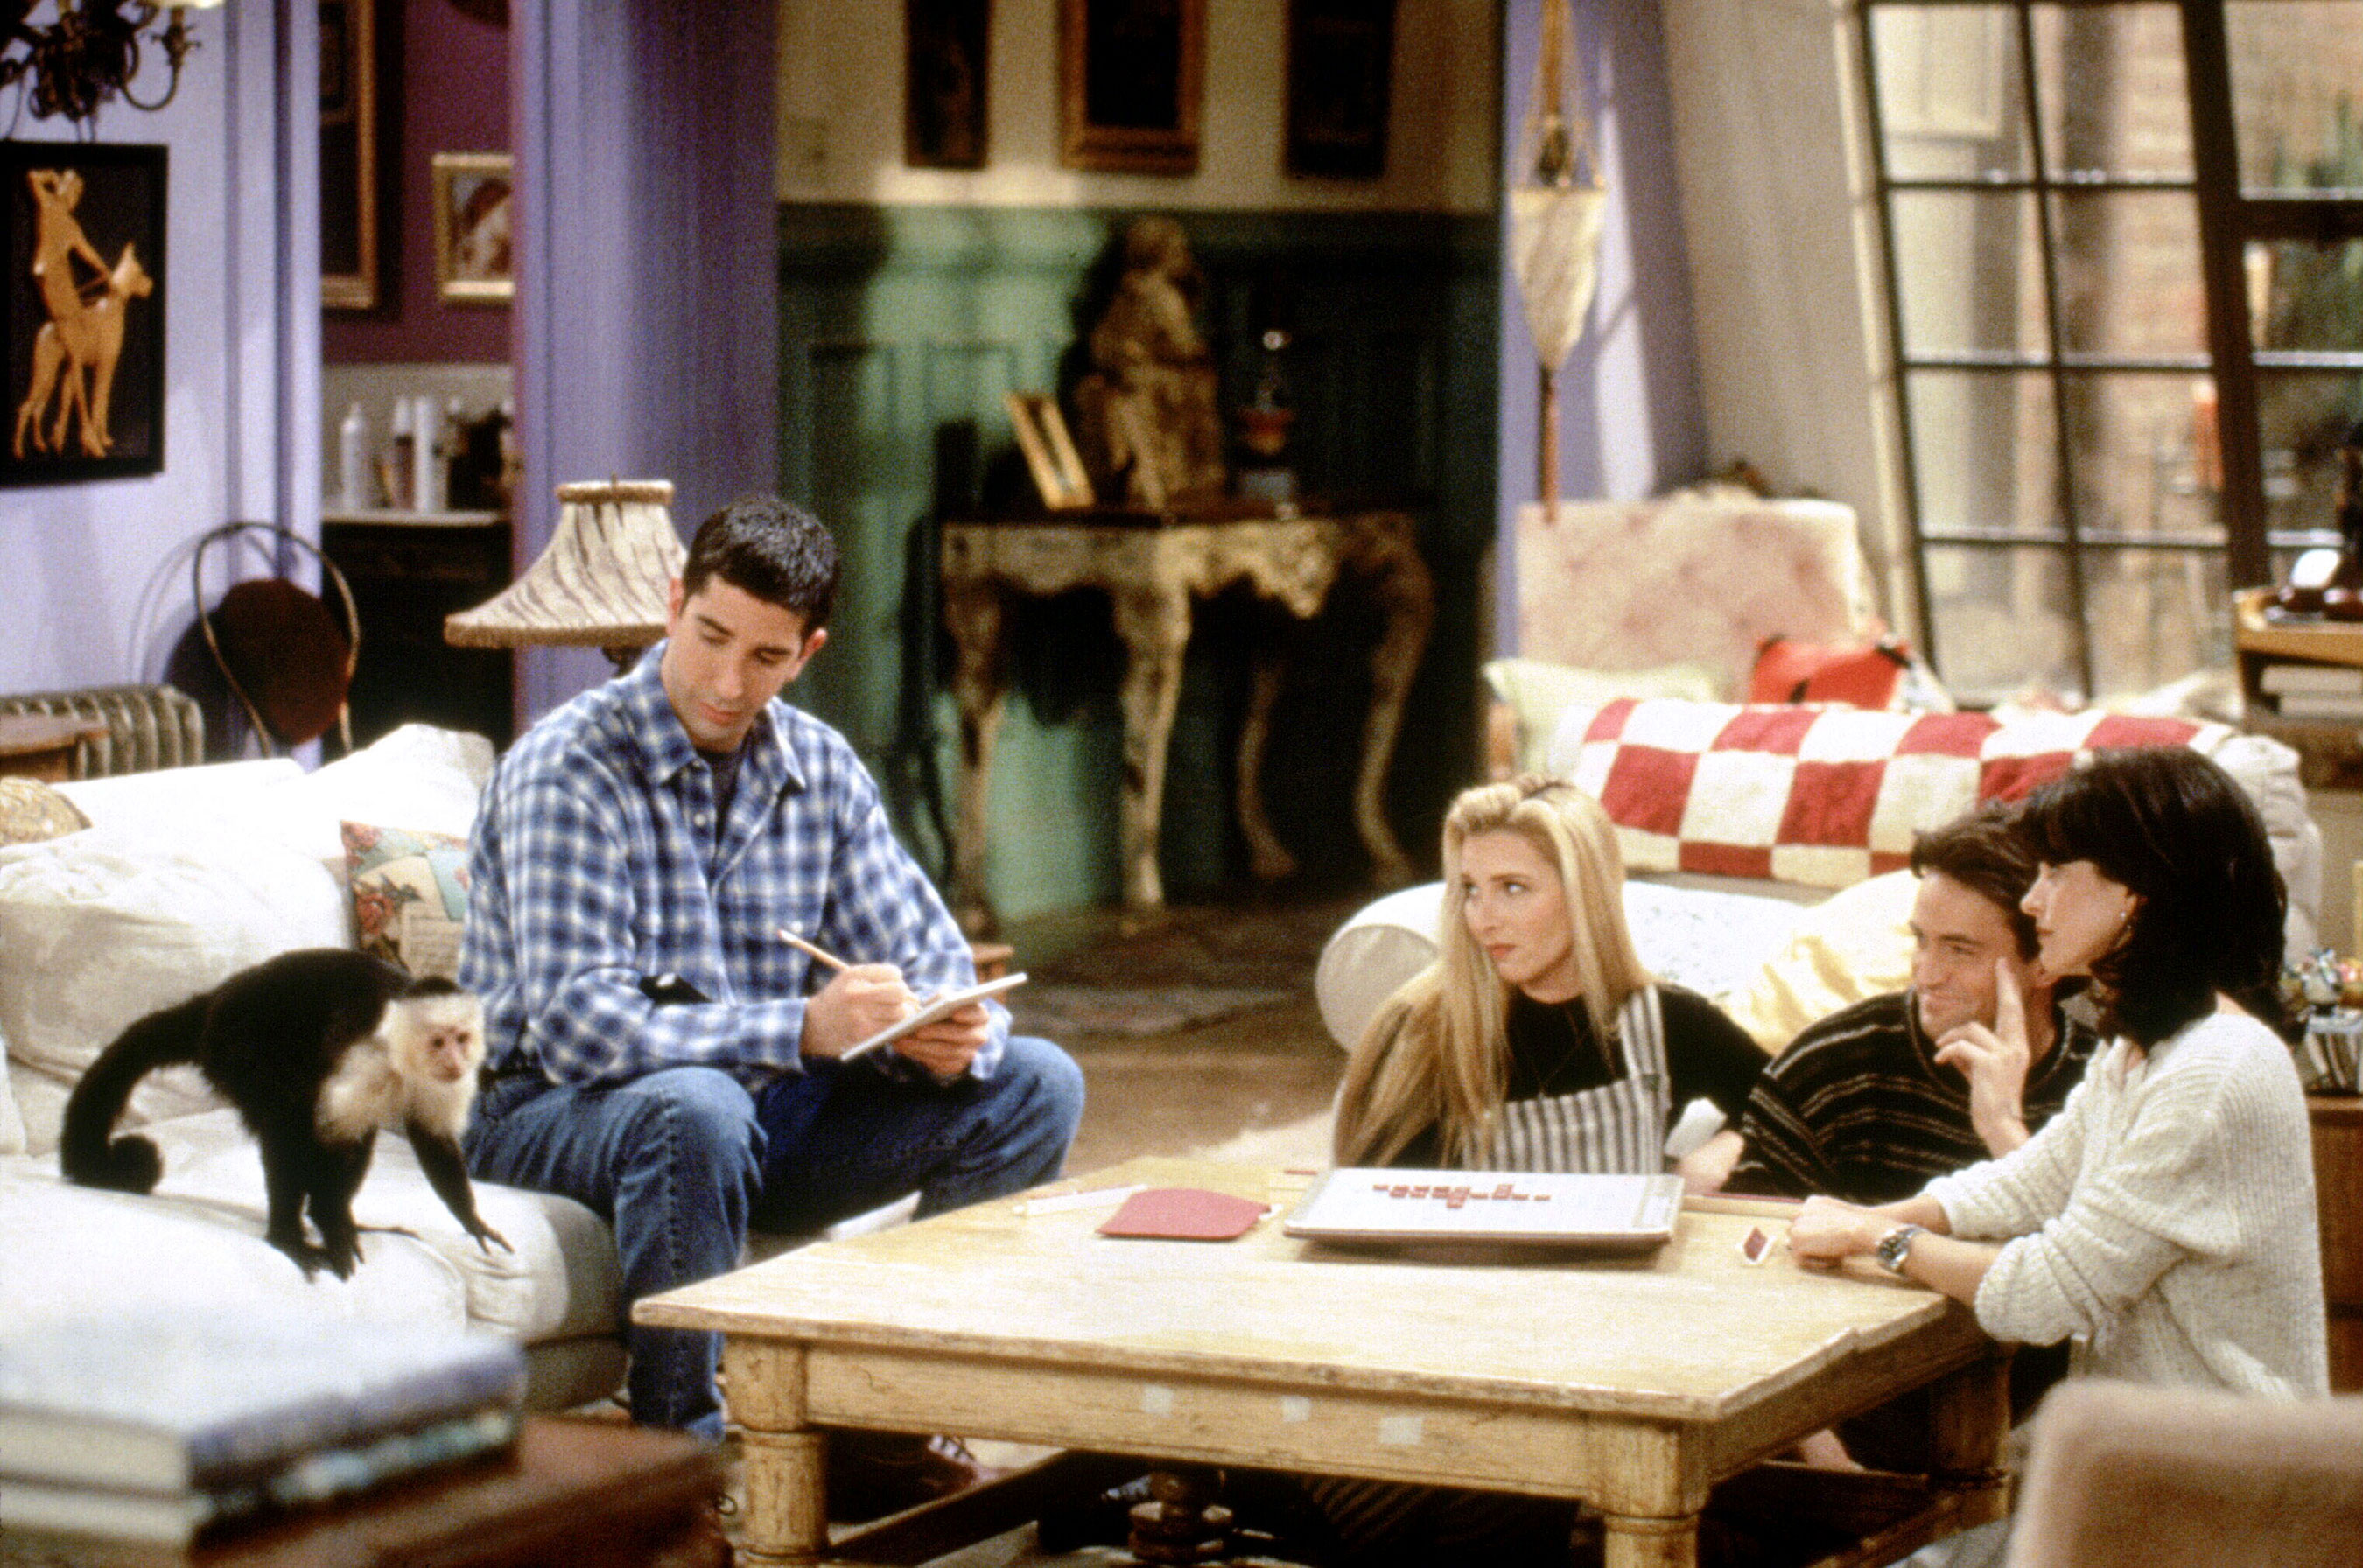 Friends Reunion Shop The Look For The Most Iconic Interiors On The Show!_2 friends reunion Friends Reunion: Shop The Look For The Most Iconic Interiors On The Show! Friends Reunion Shop The Look For The Most Iconic Interiors On The Show 2